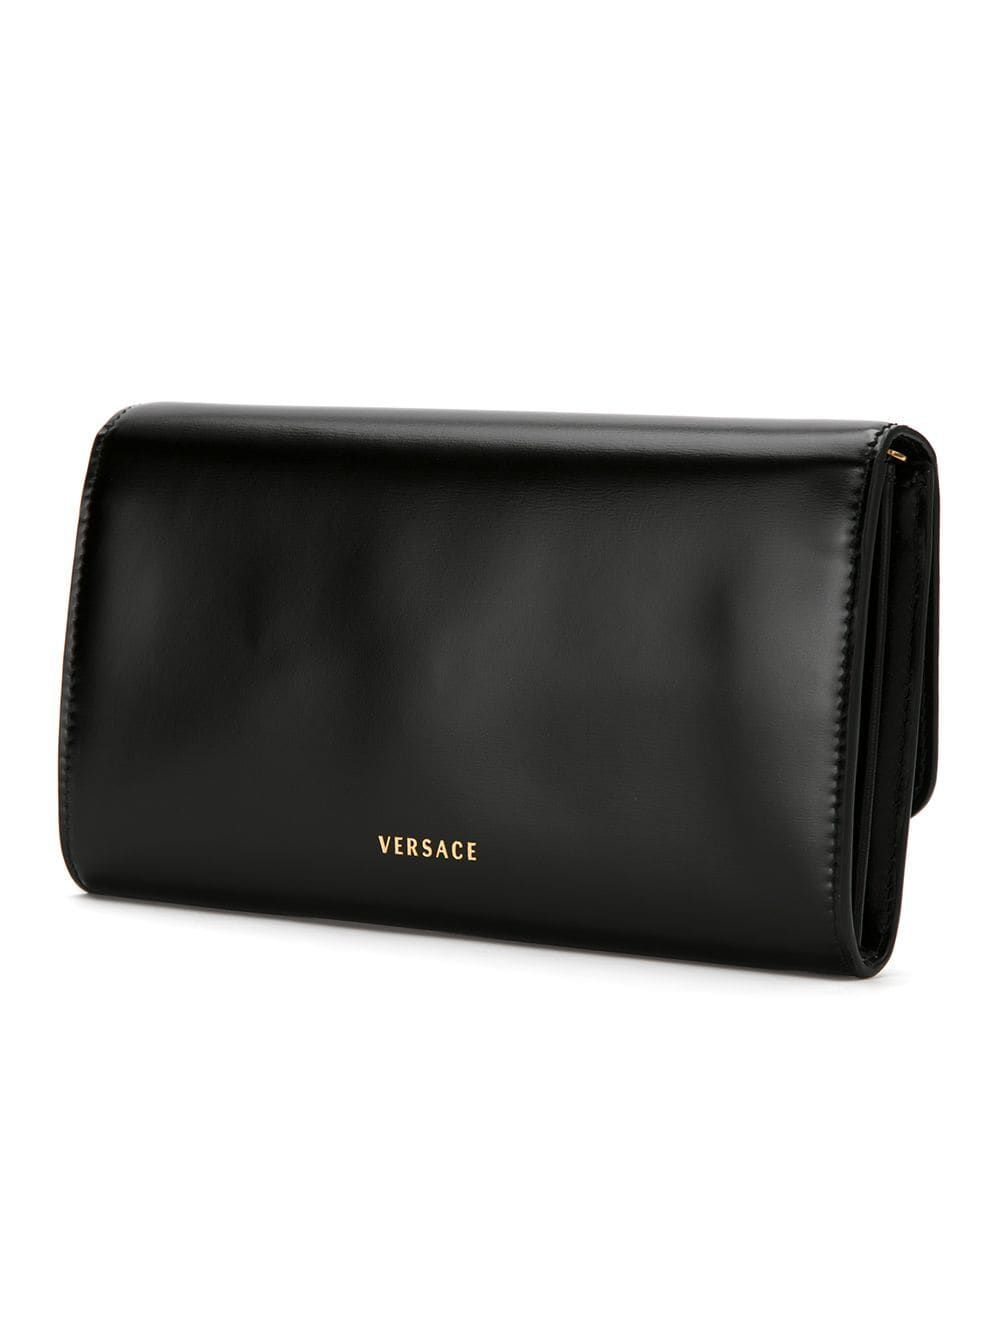 VERSACE WOMEN'S DBSG377DVTH3K41OT BLACK LEATHER POUCH